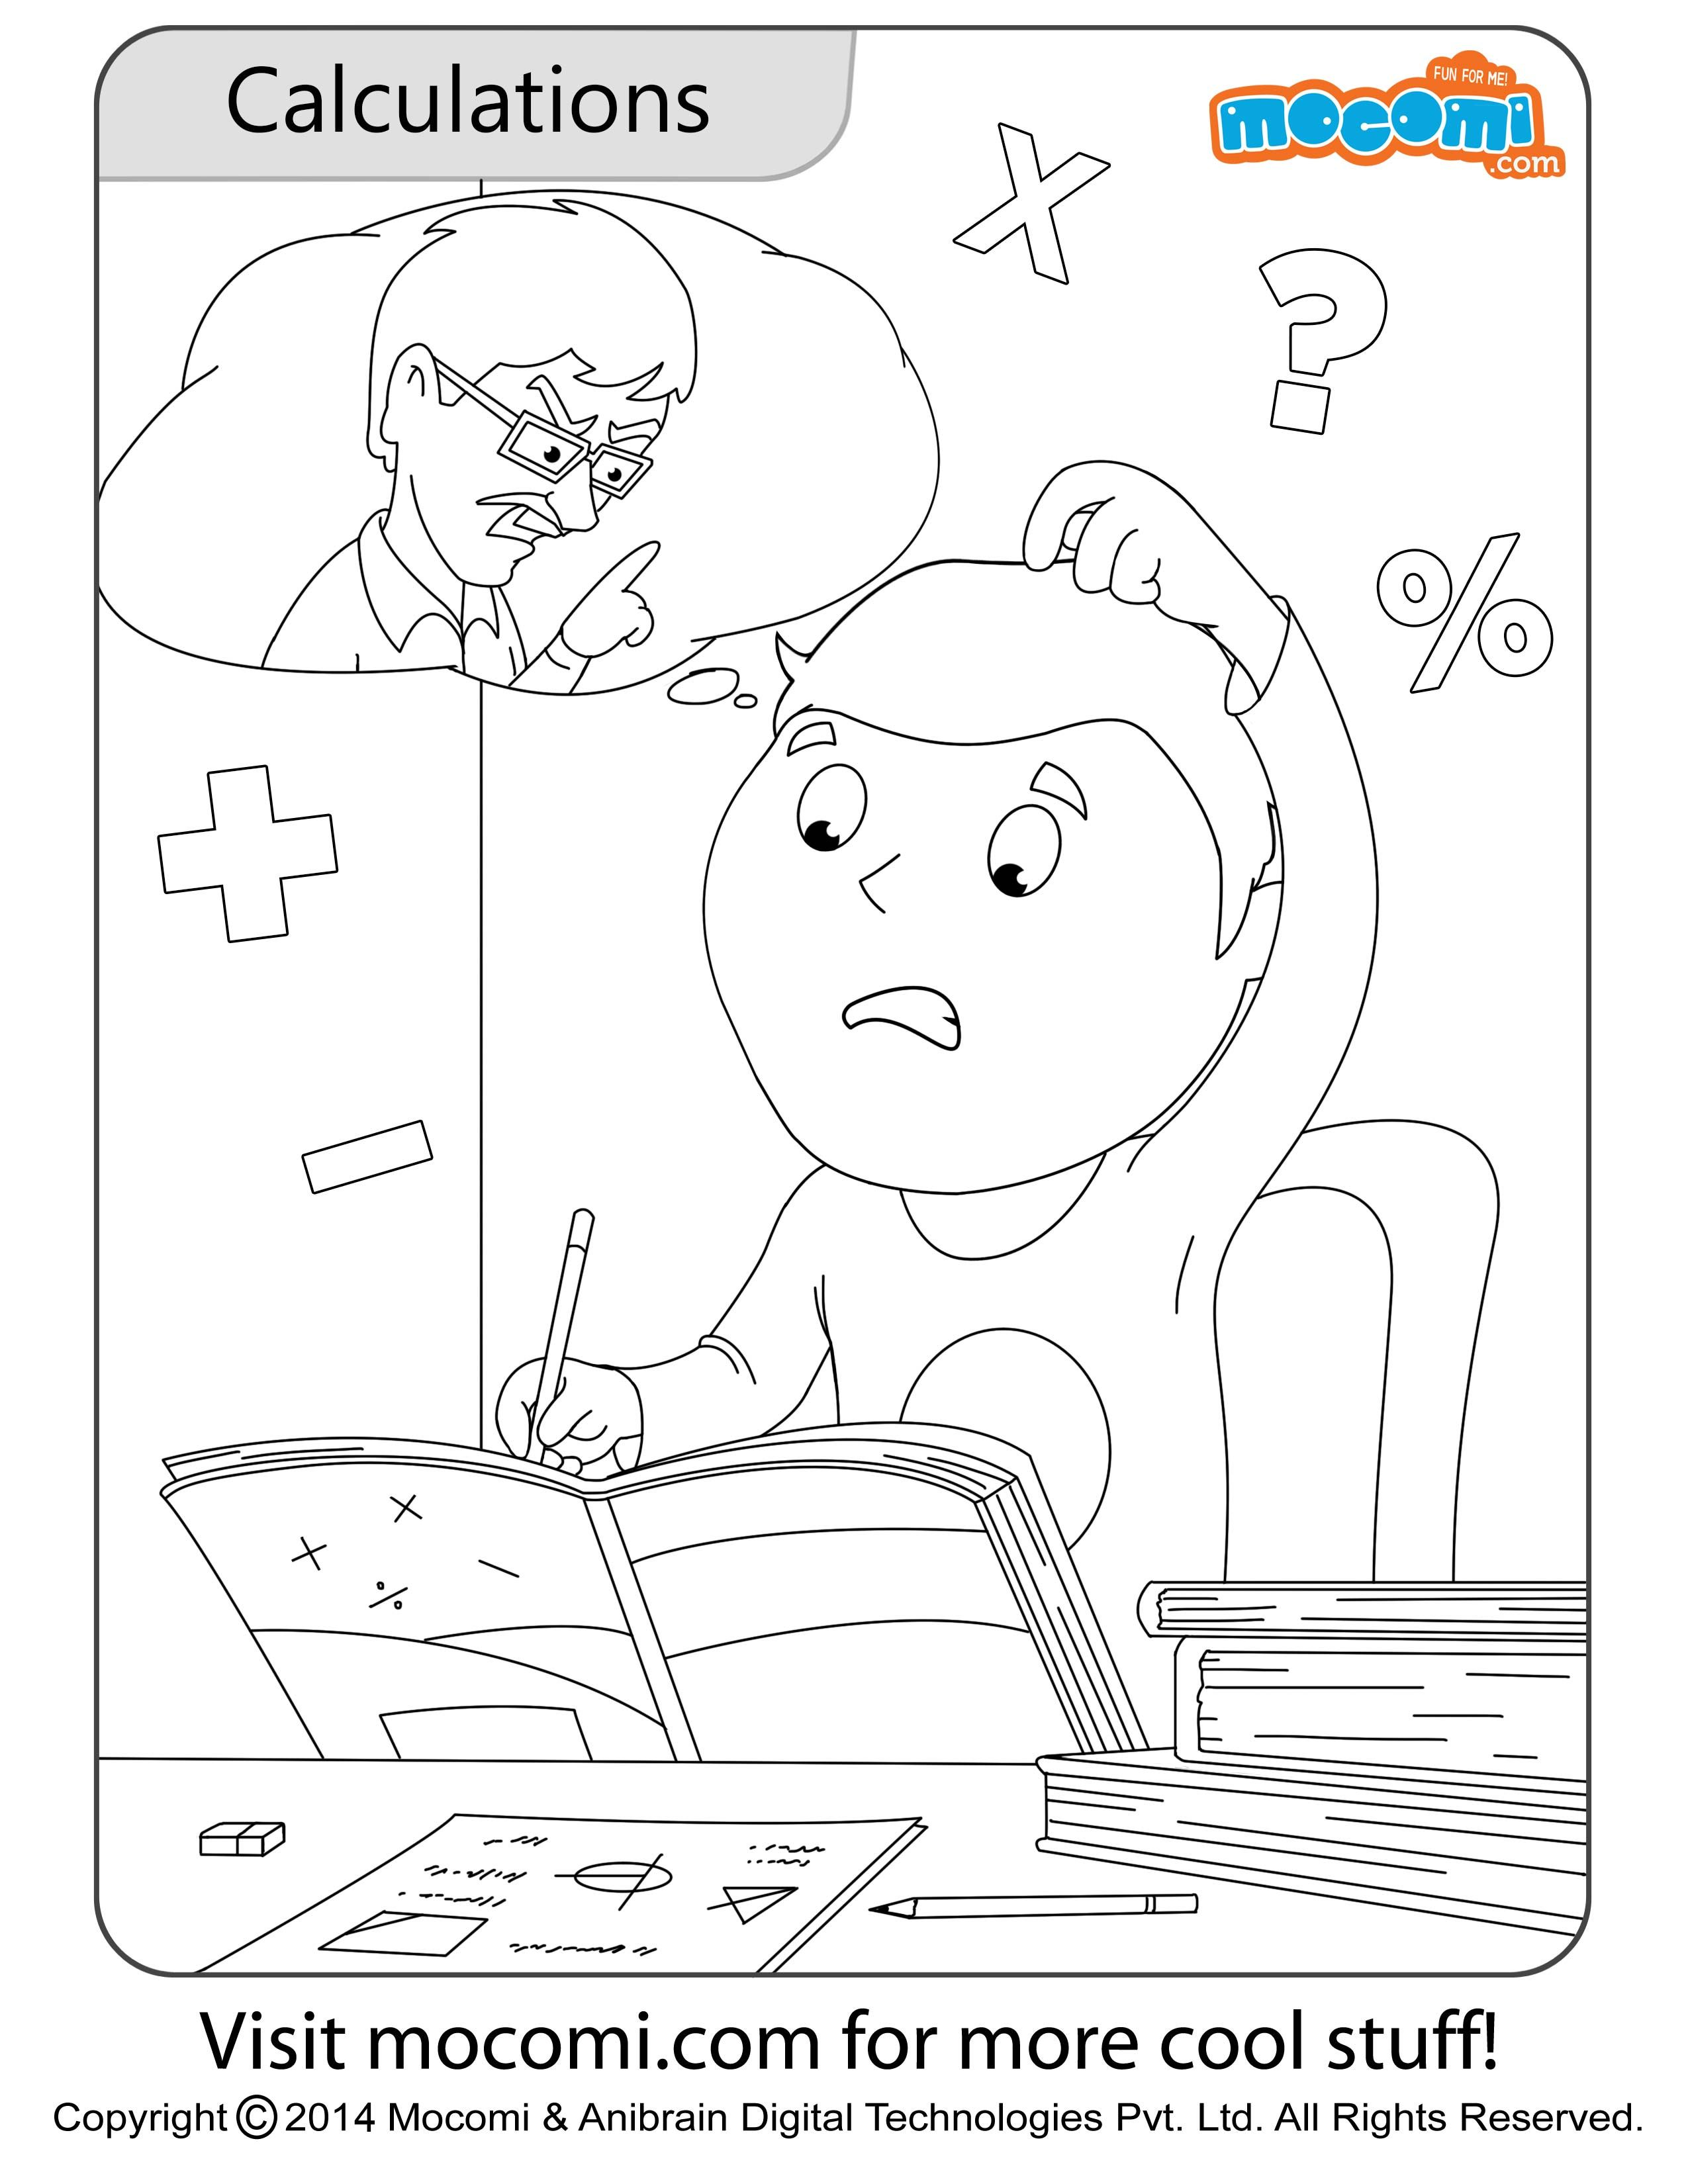 Colouring pages you can colour online - Jojo Calculations Online Jojo Colouringpage For Kids Free Printable Coloring Pages For A